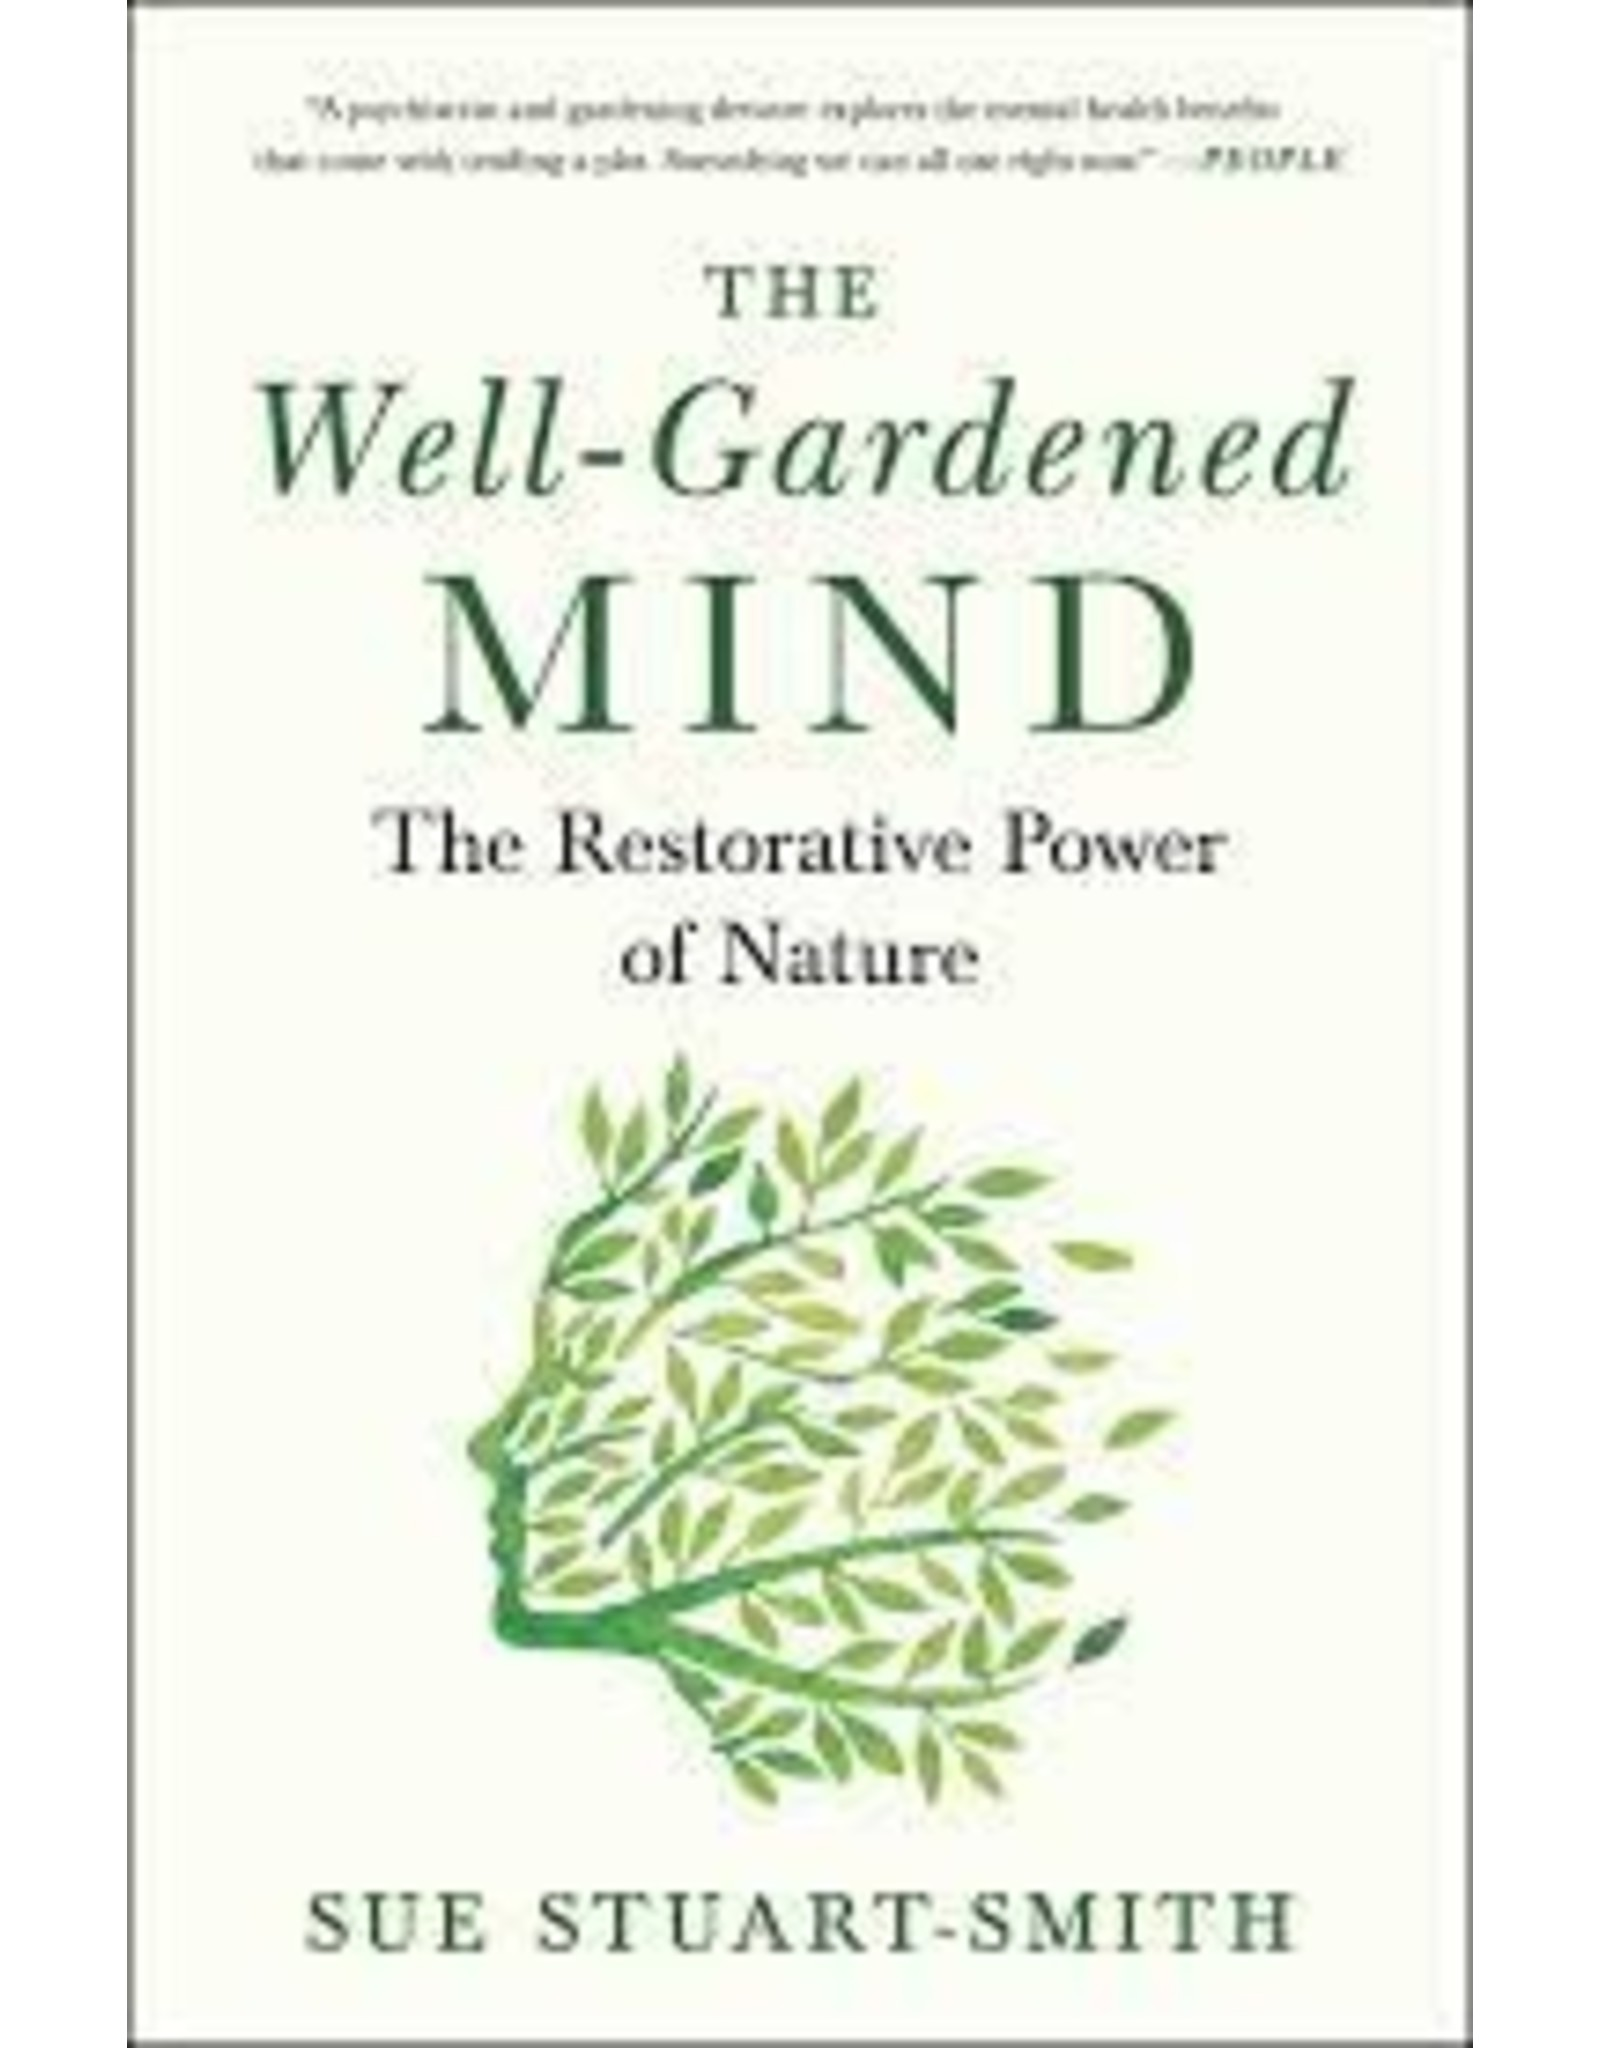 Books The Well-Gardened Mind: The Restorative Power of Nature by Sue Stuart-Smith